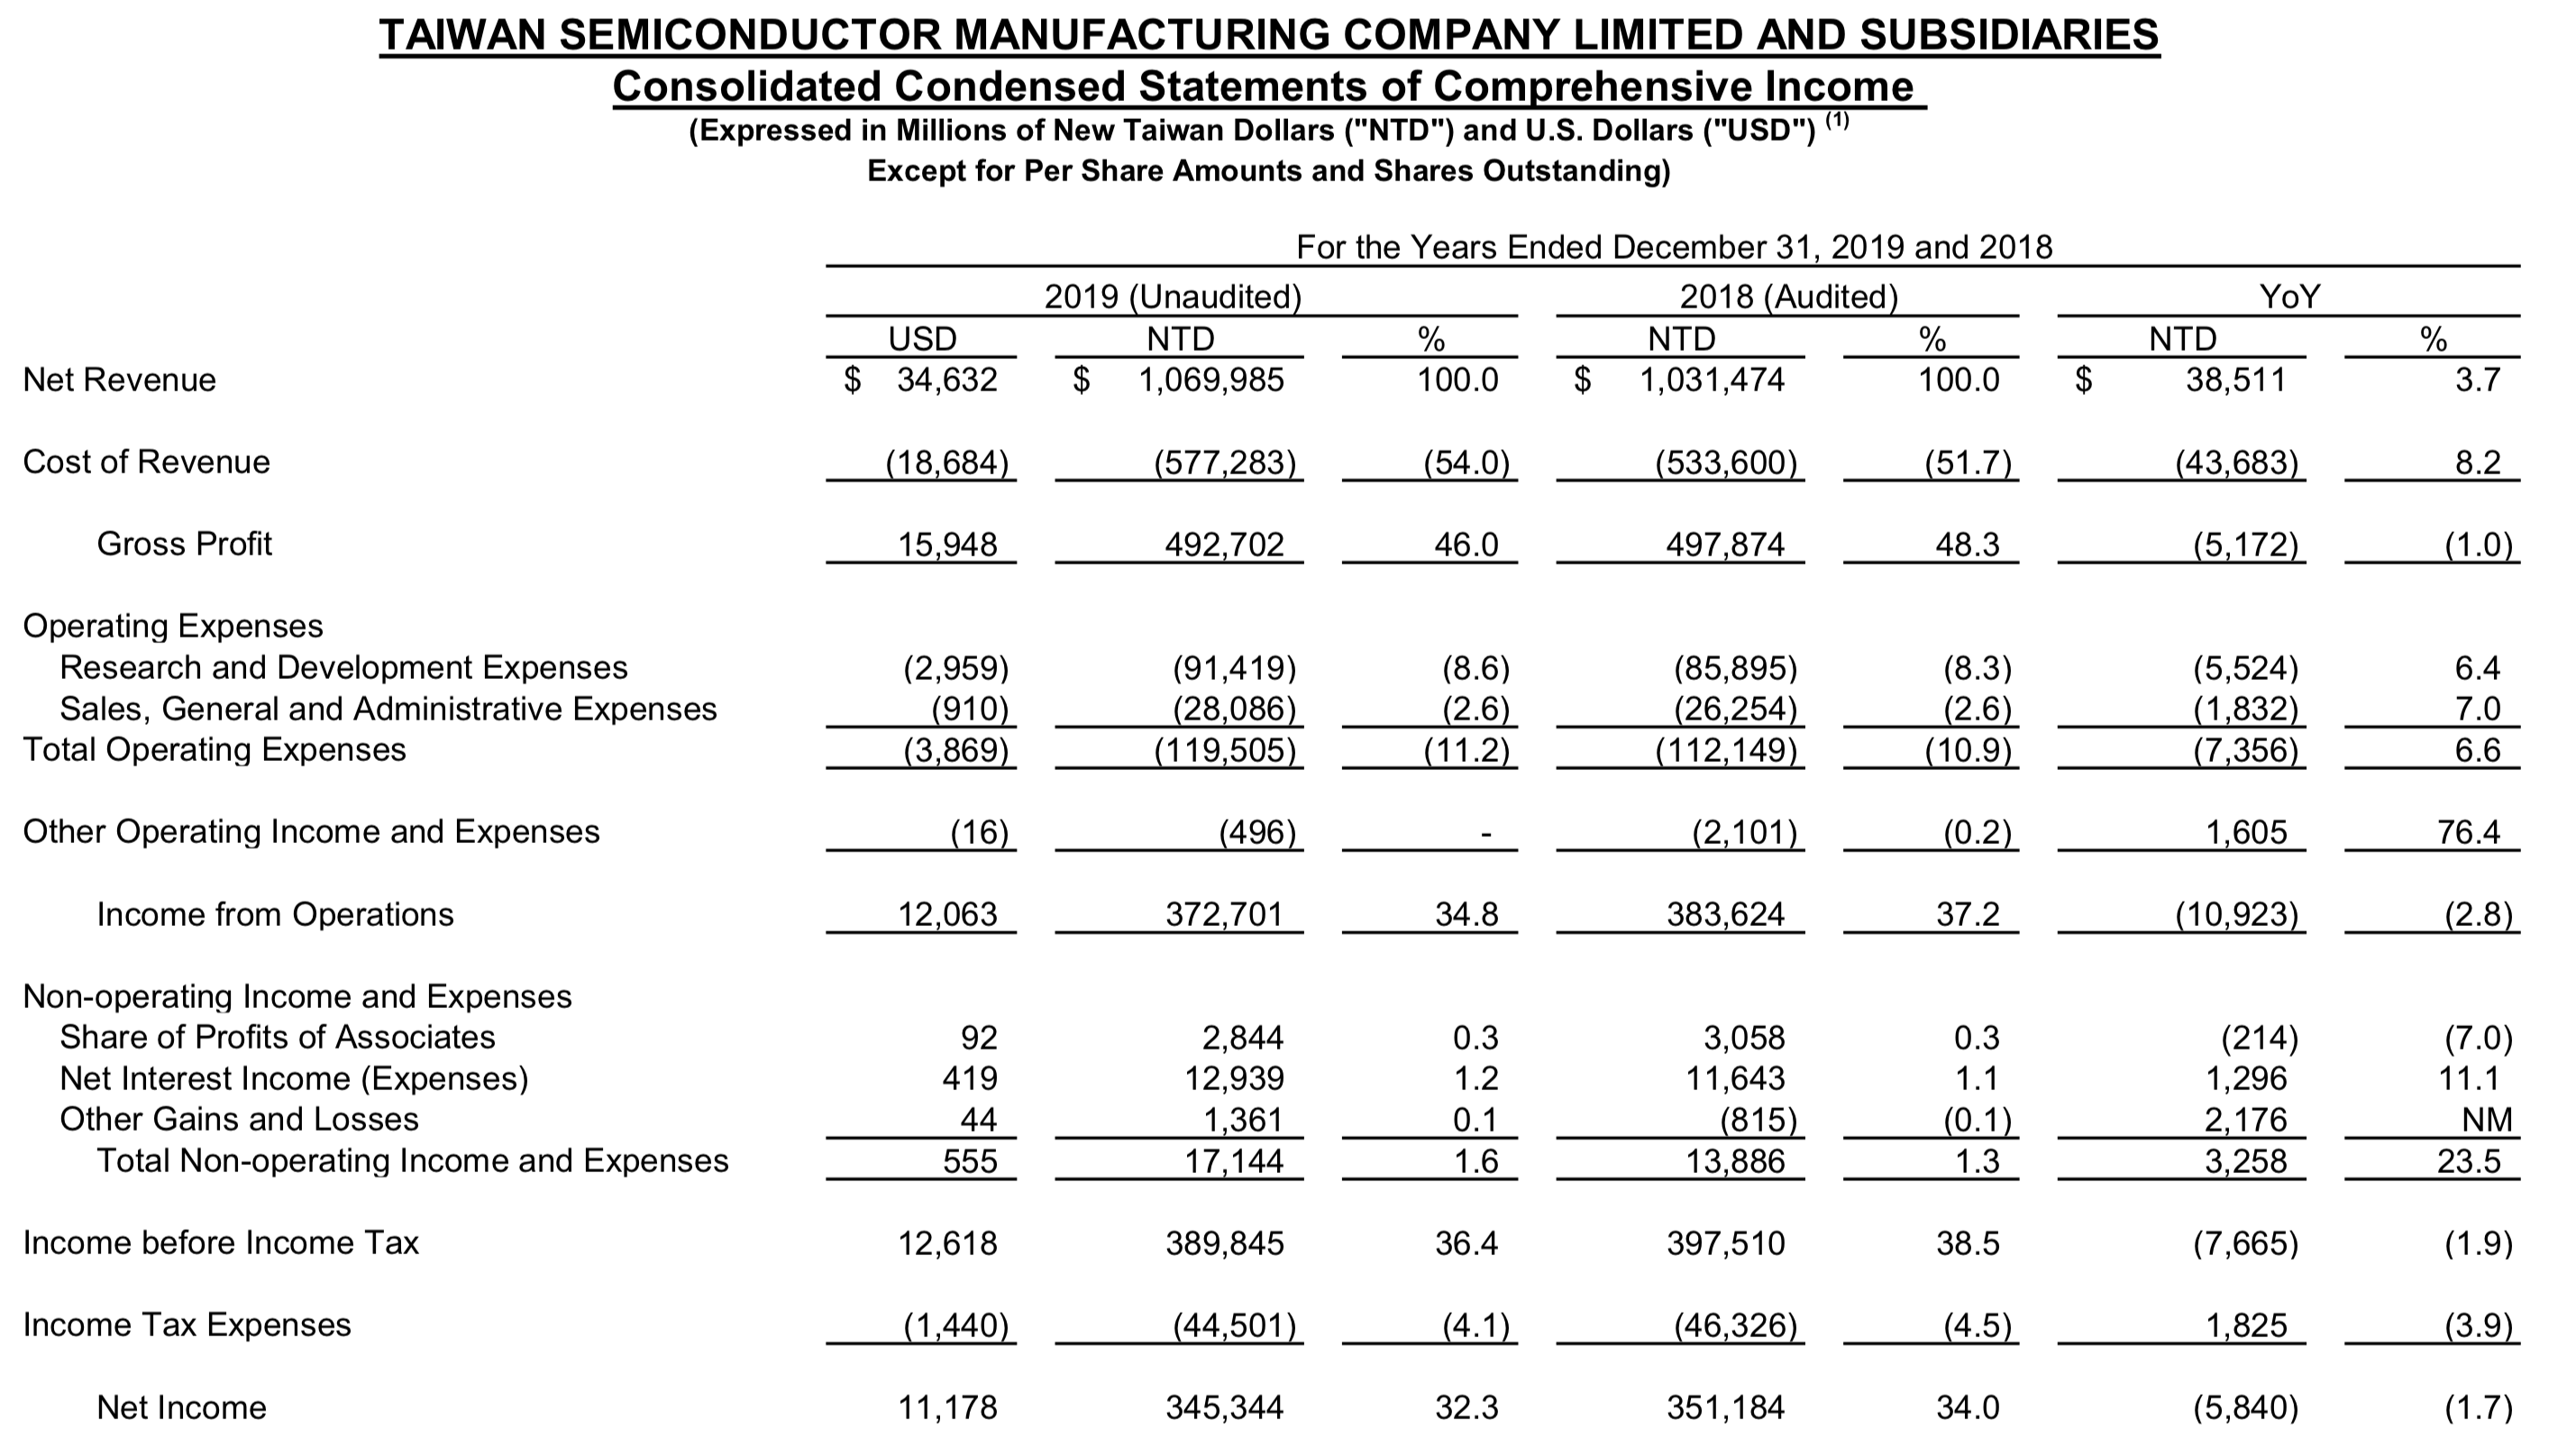 TSMC financial statements for fiscal, calendar year 2019.